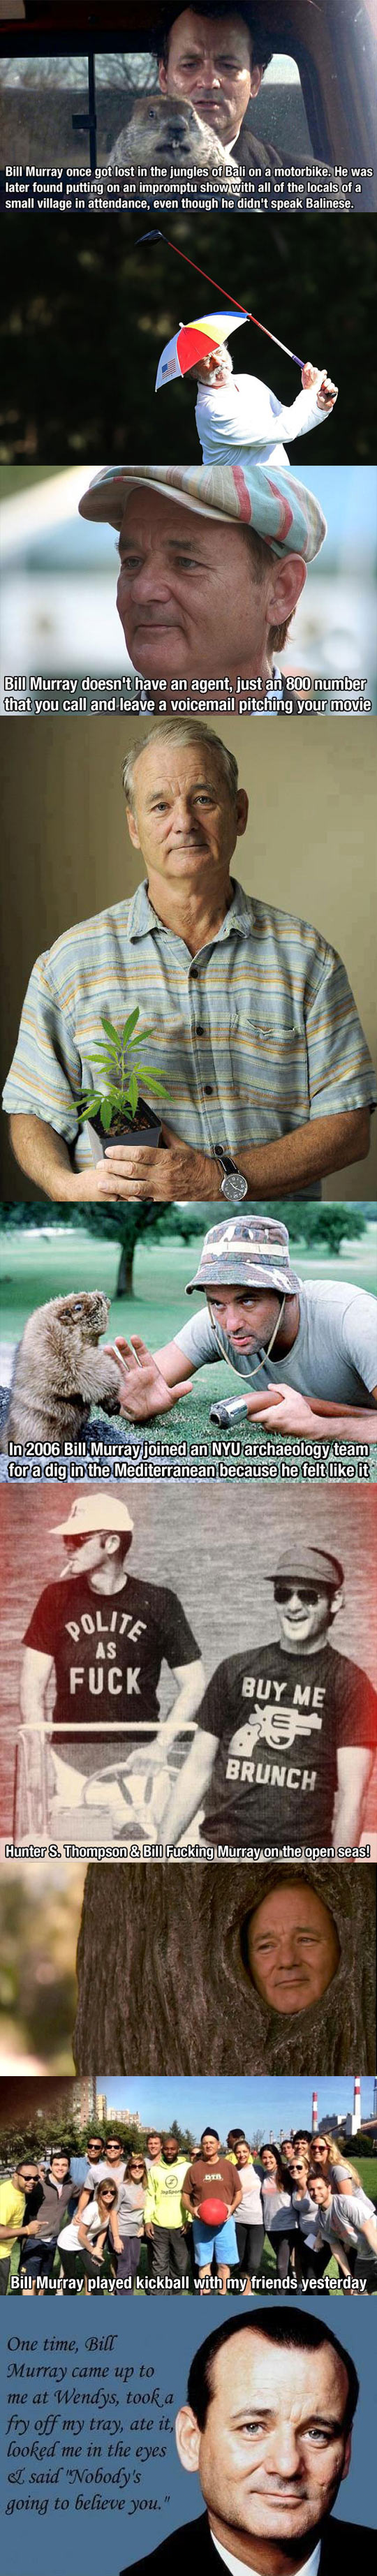 funny-Bill-Murray-images-tribute-actor